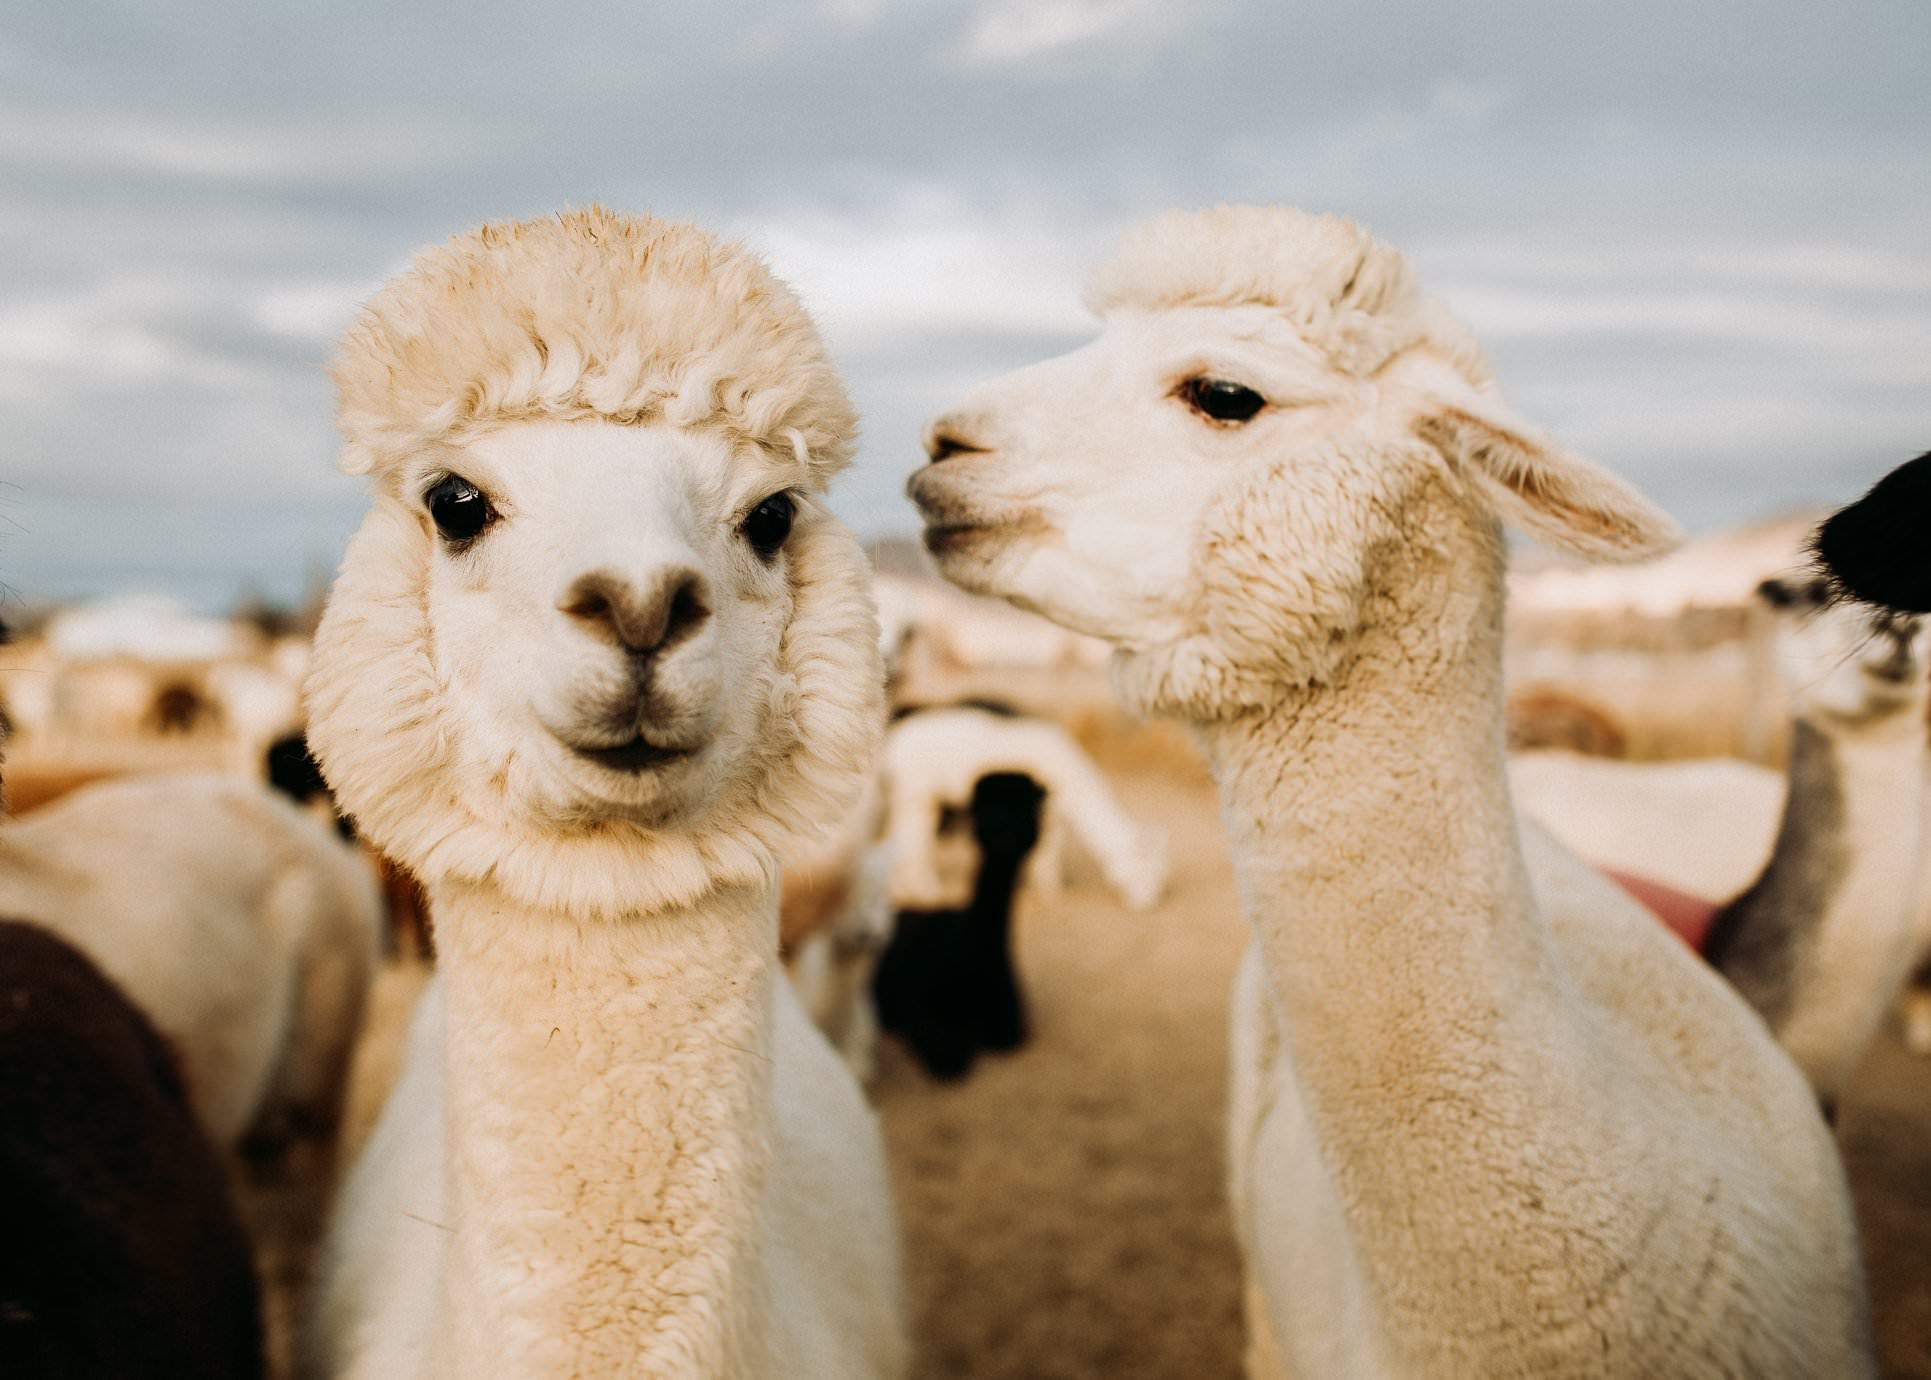 an alpaca is about to kiss another alpaca